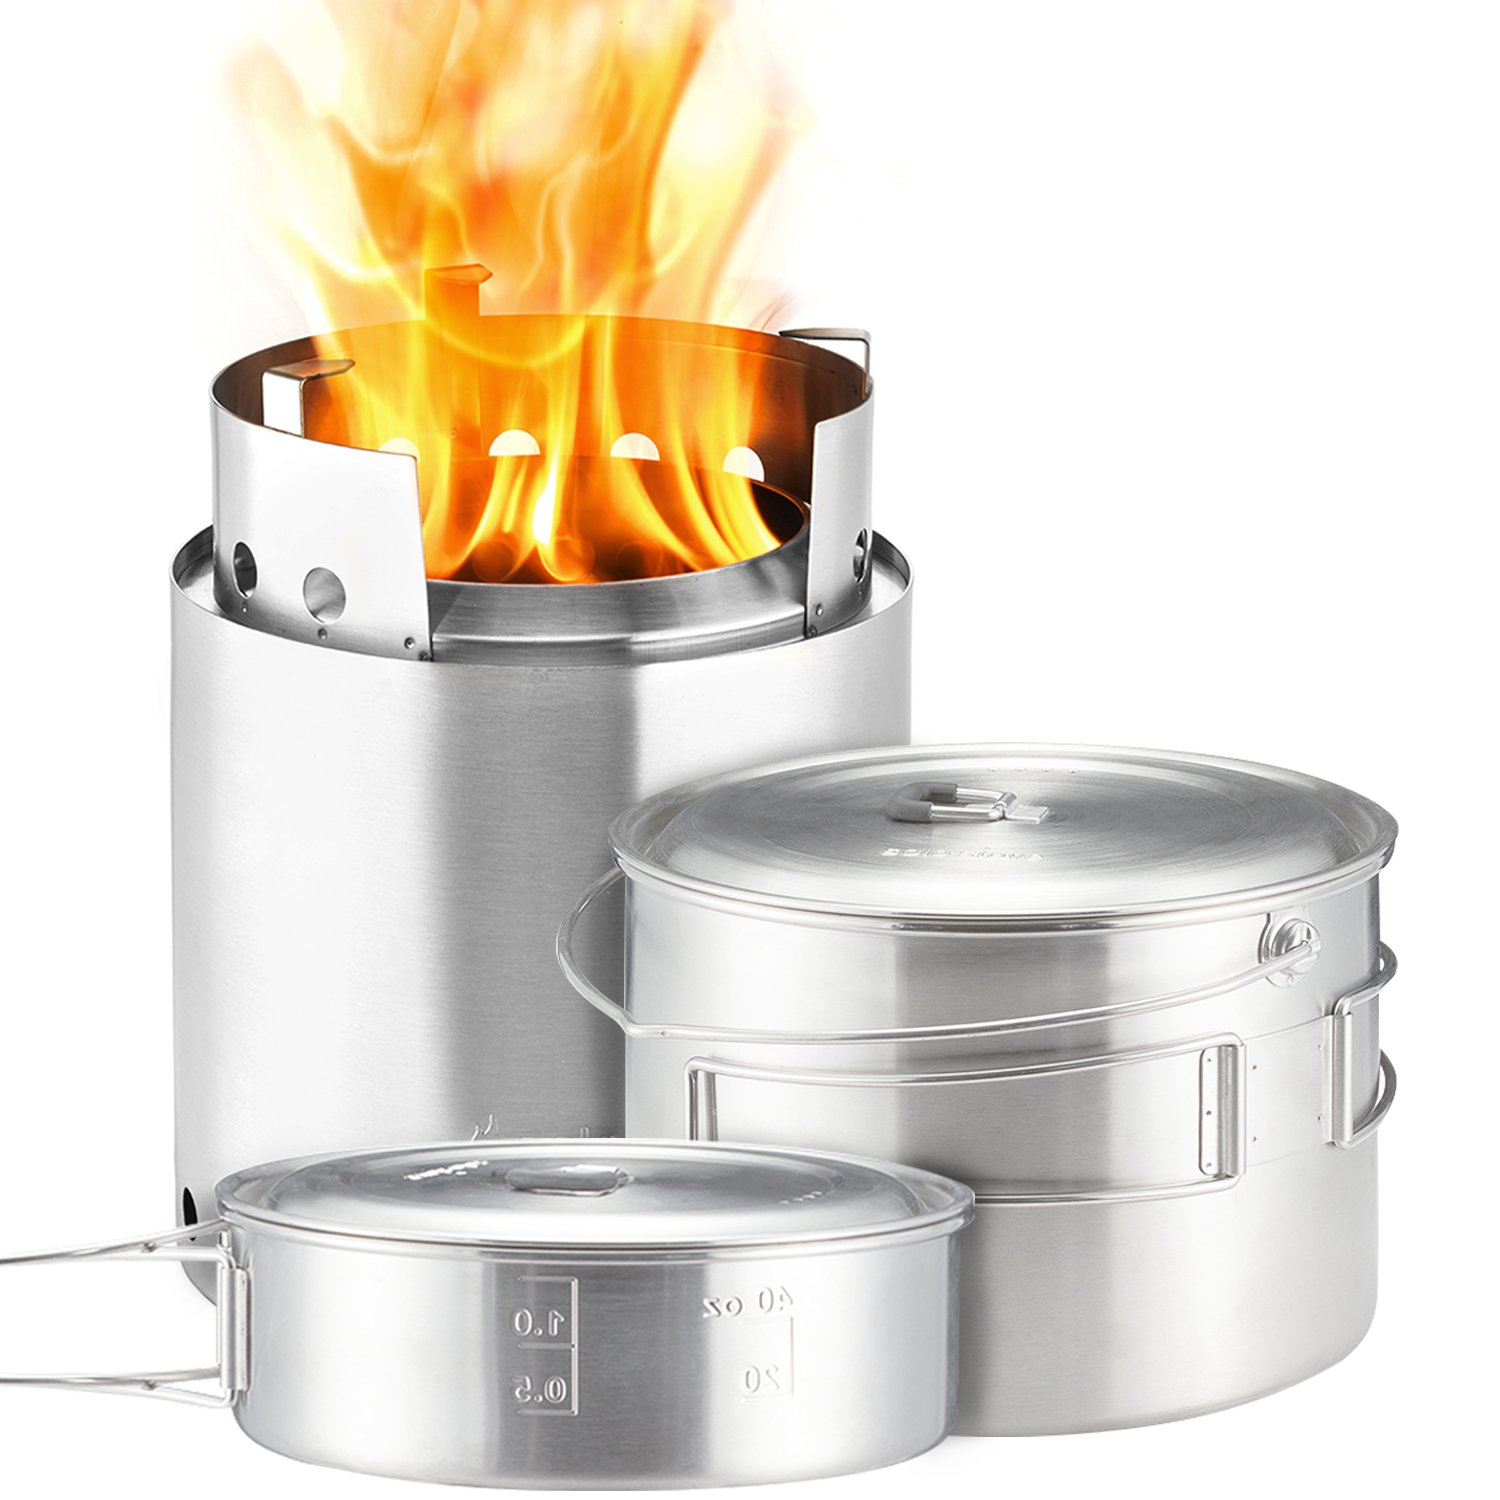 Solo Stove Campfire & 2 Pot Set Combo: 4+ Person Wood Burning Camping Stove. Outdoor Kitchen Kit for Backpacking, Camping, Survival. Burns Twigs - NO Batteries or Liquid Fuel Gas Canister Required.